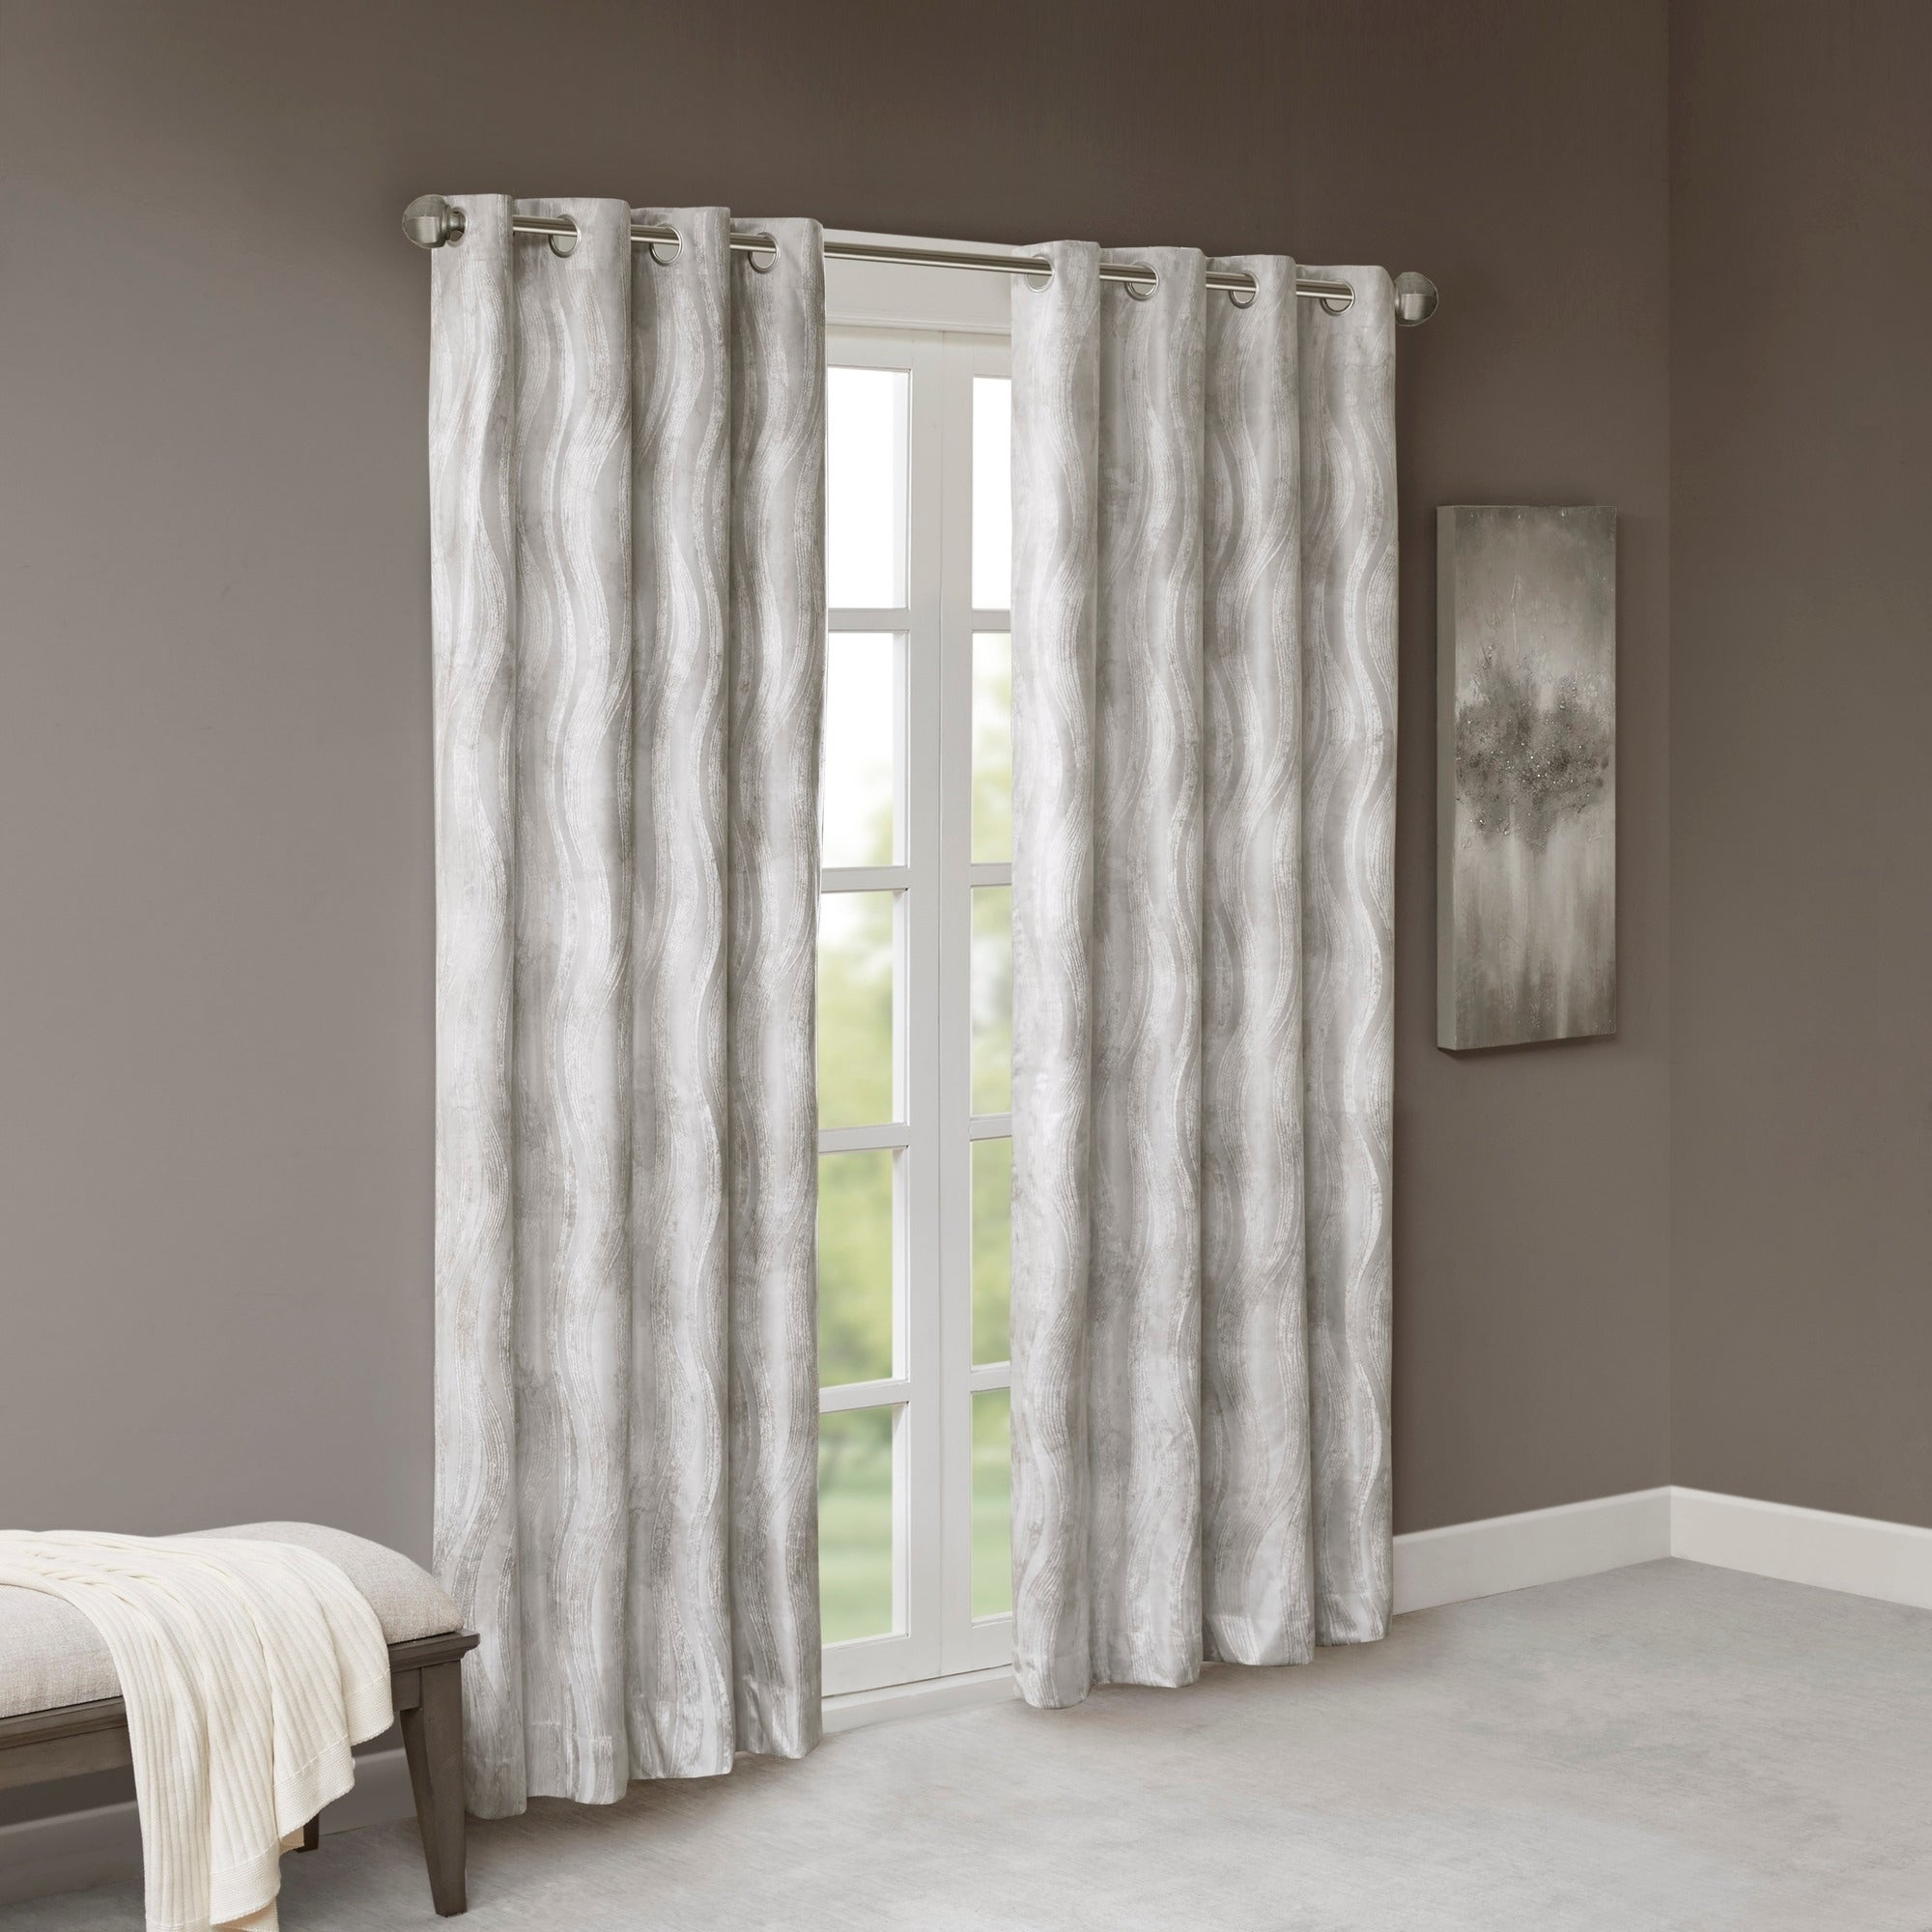 Sunsmart Alastair Ivory Printed Jacquard Grommet Top Total Blackout Curtain Within Sunsmart Dahlia Paisley Printed Total Blackout Single Window Curtain Panels (View 19 of 30)